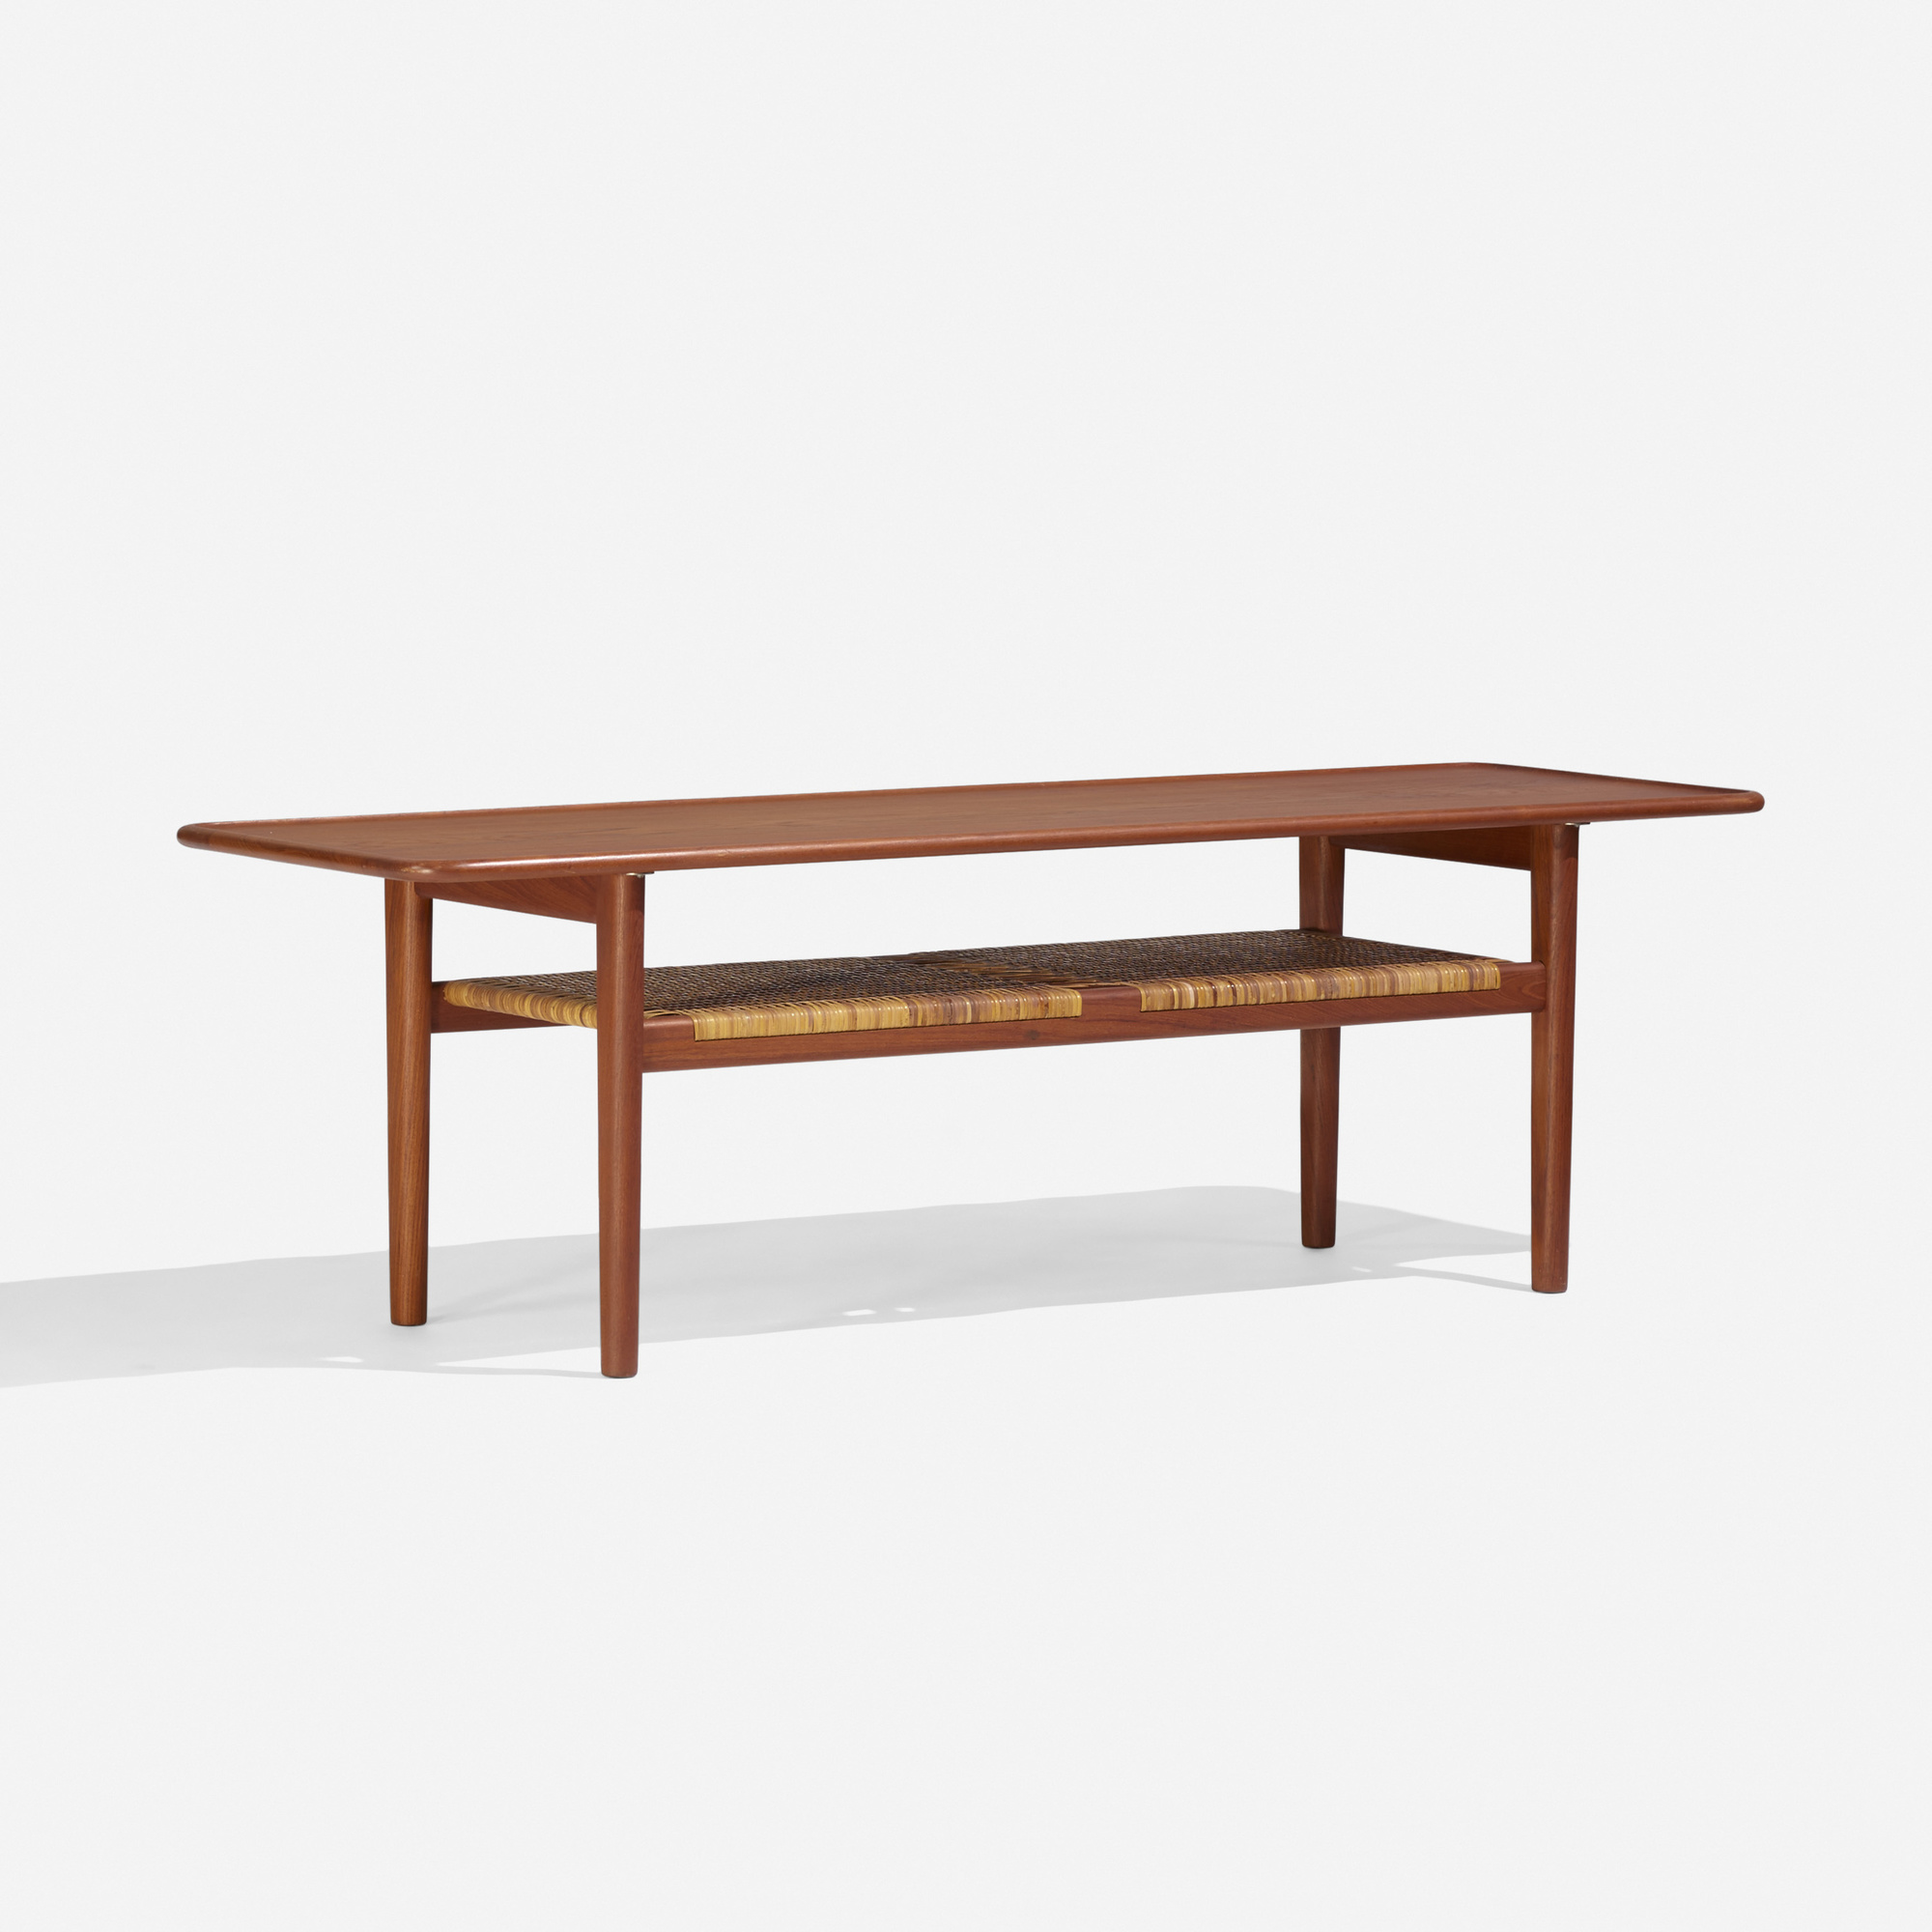 278: Hans J. Wegner / coffee table, model AT 10 (1 of 3)